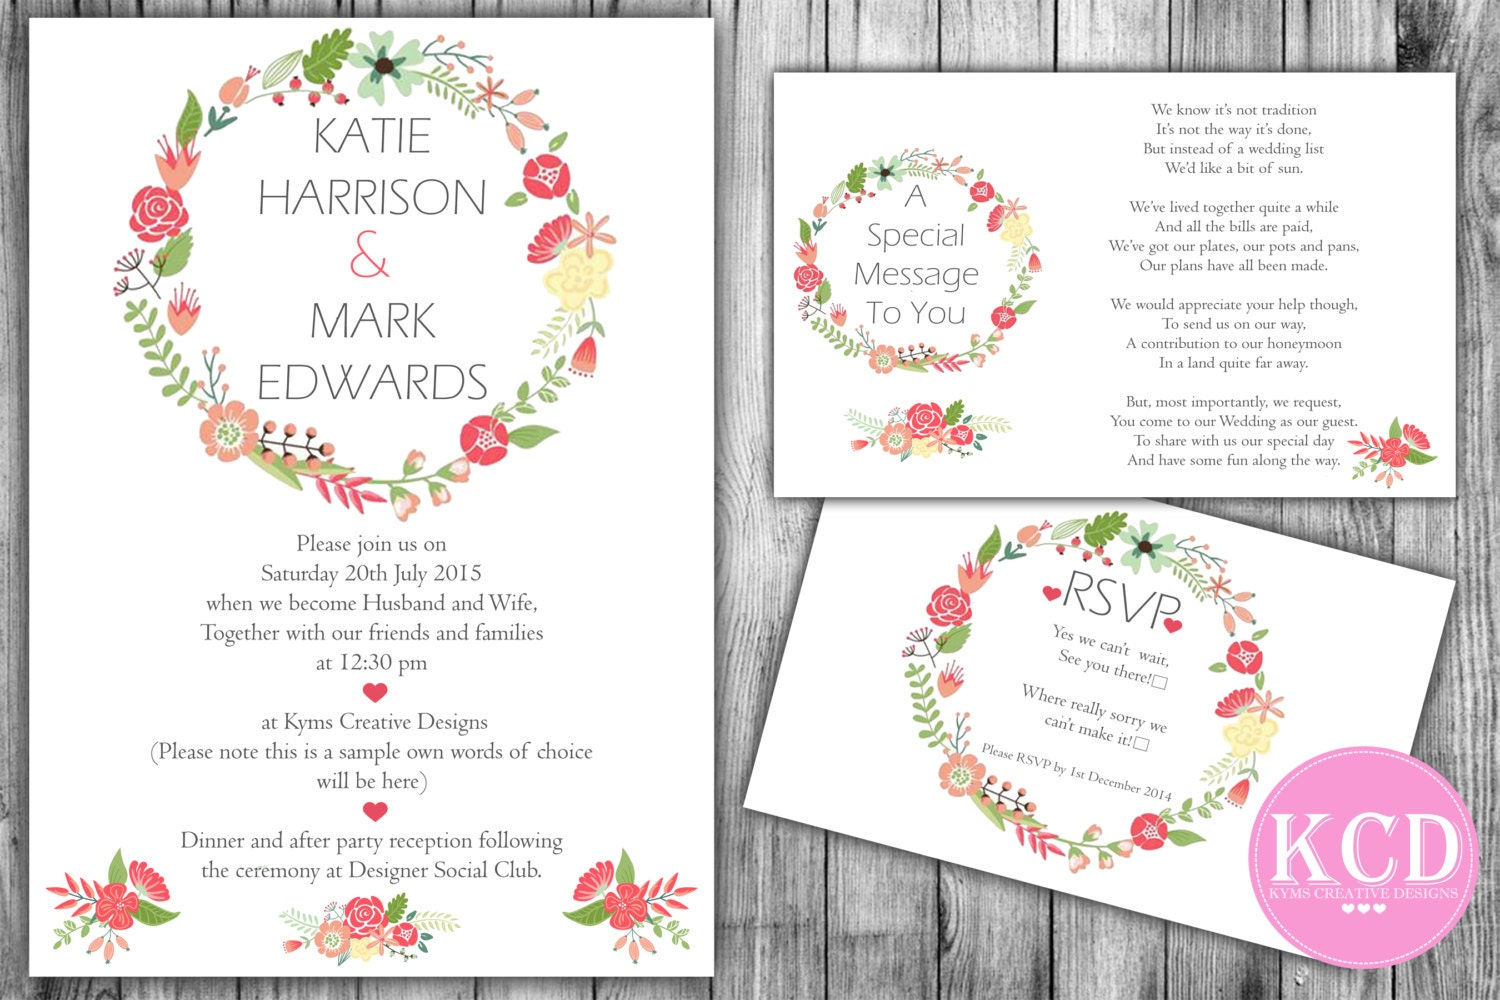 Floral Wedding Invitation Suite Spring Wedding Invite Feather  Floral Wreath Wedding Invitation Photoshop Template  Style01